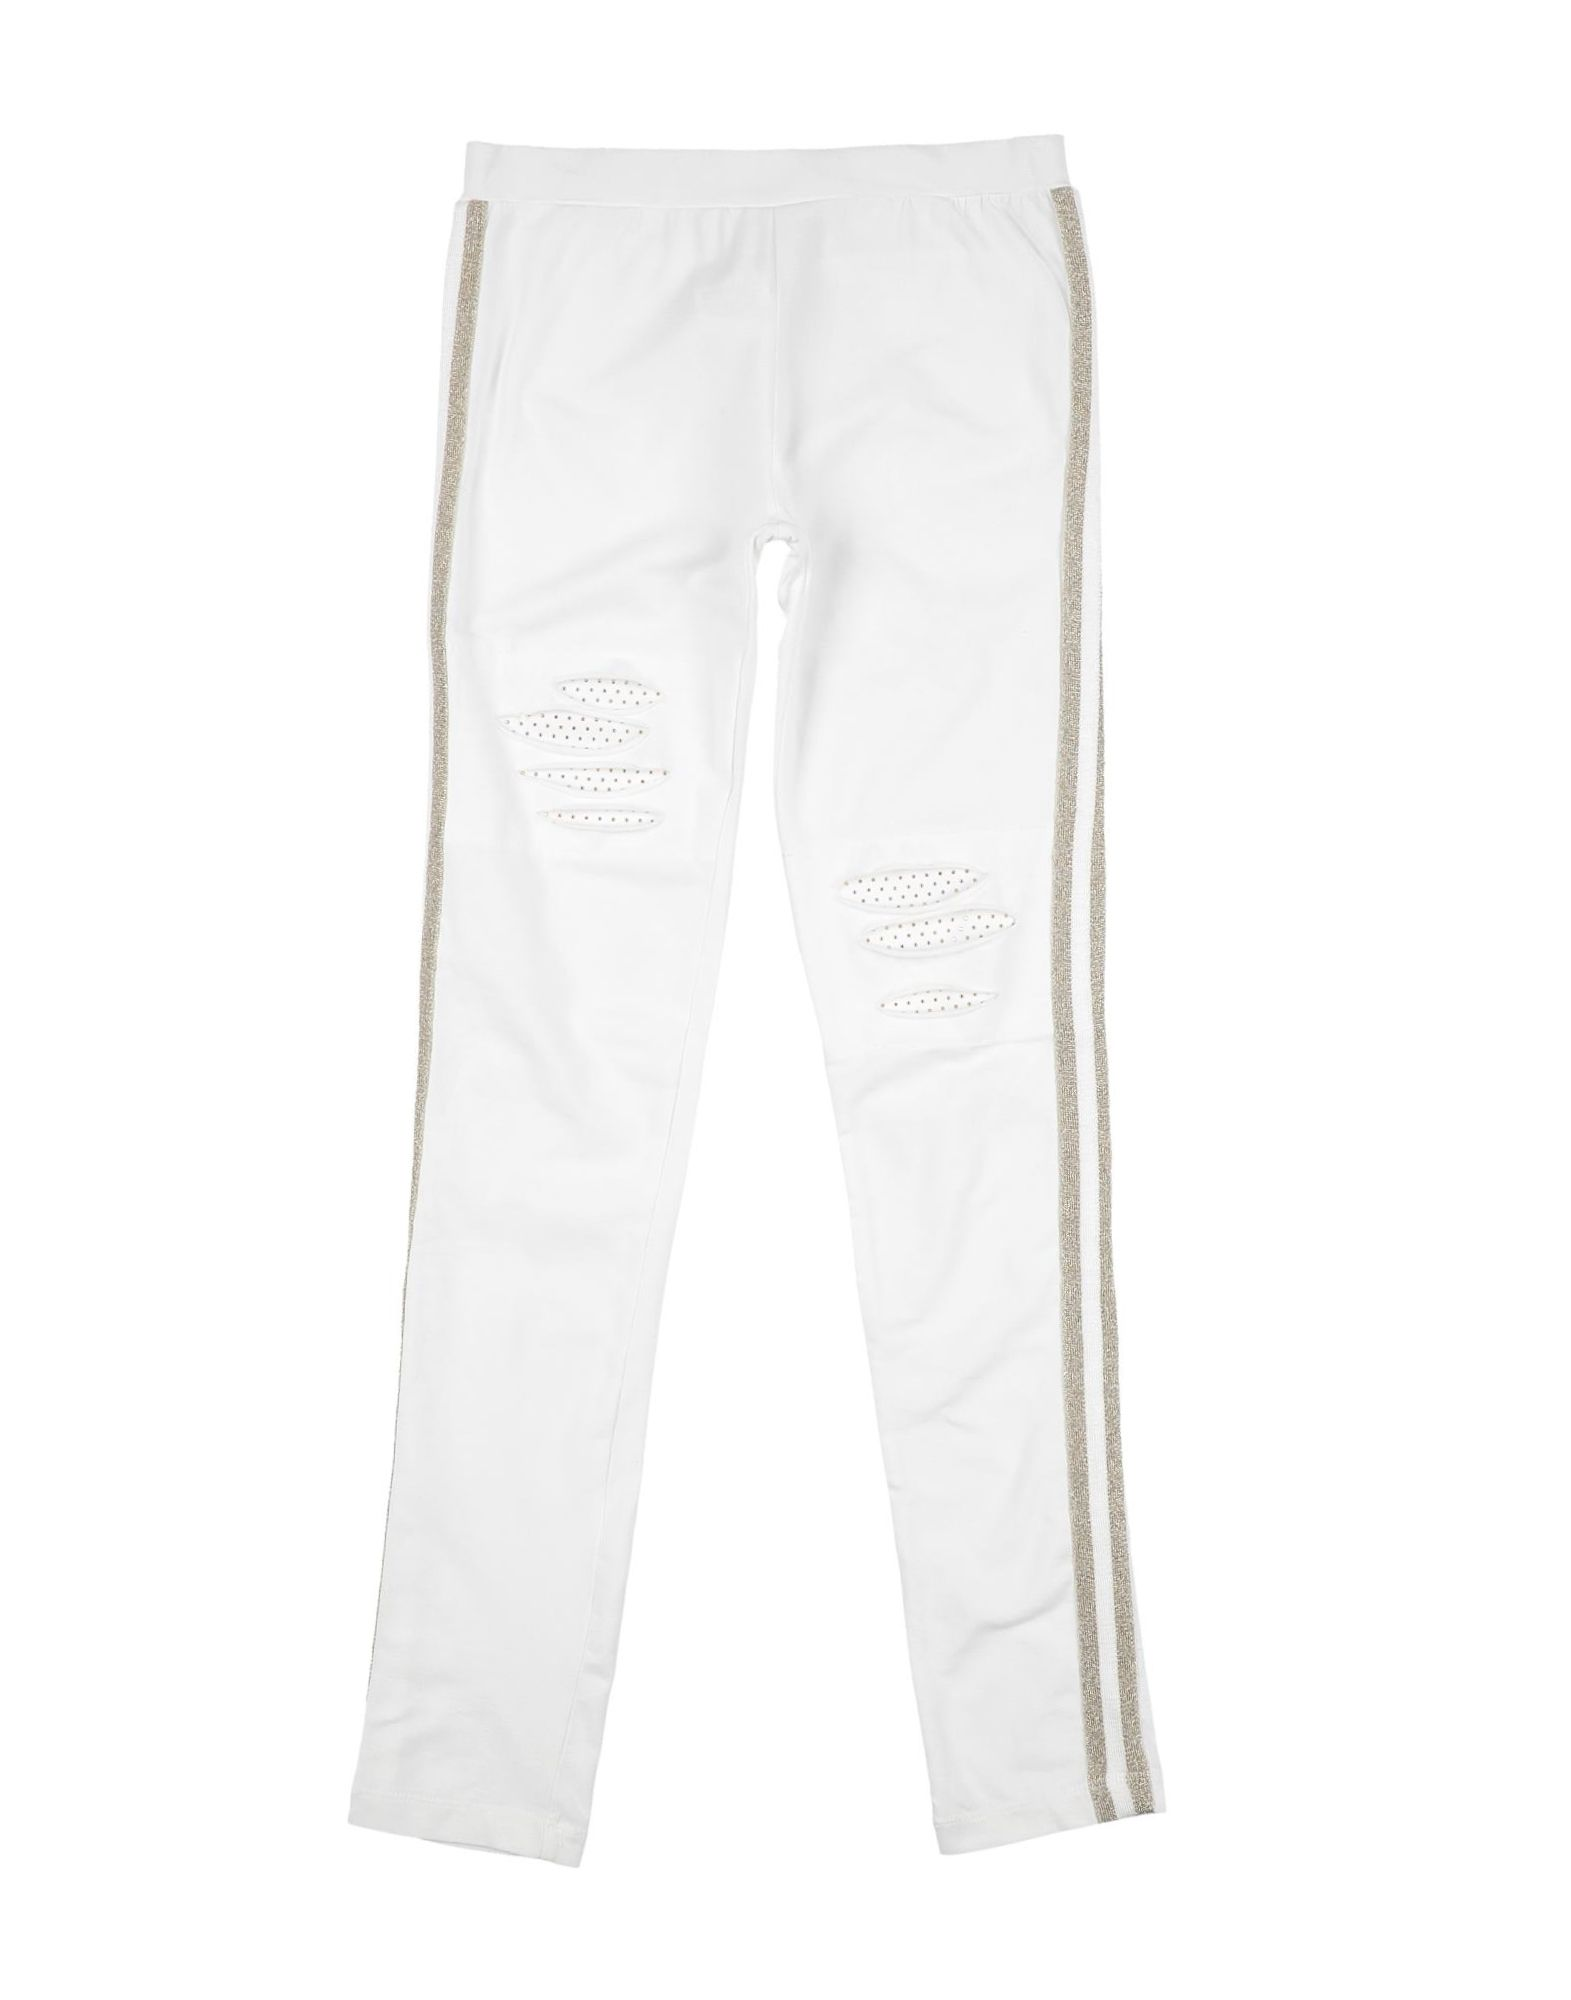 Ido By Miniconf Kids' Leggings In White